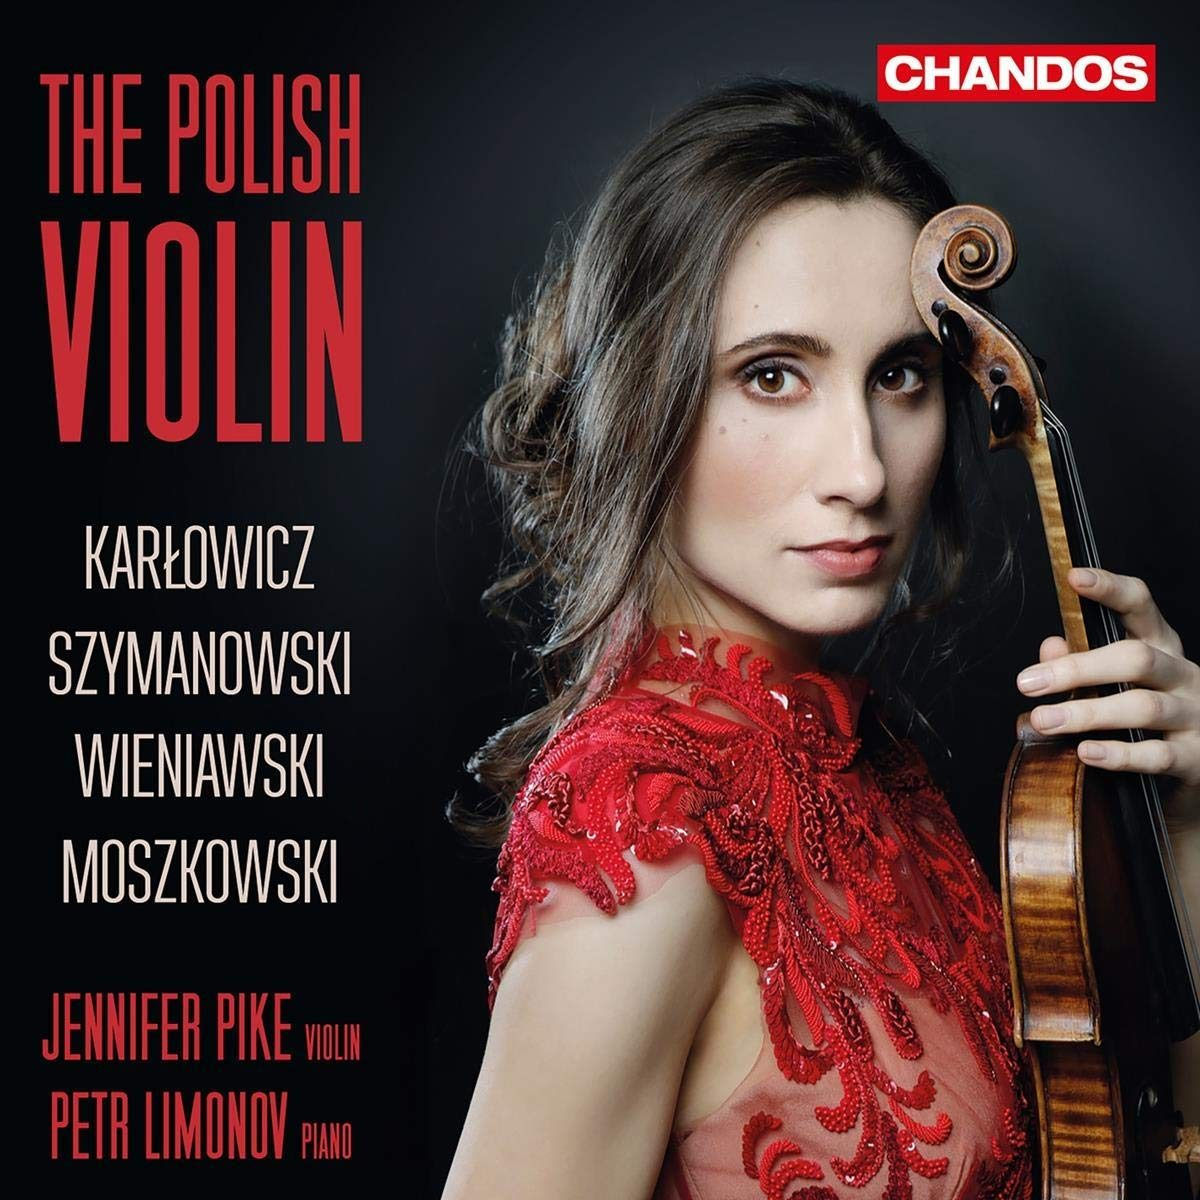 The Polish Violin cover